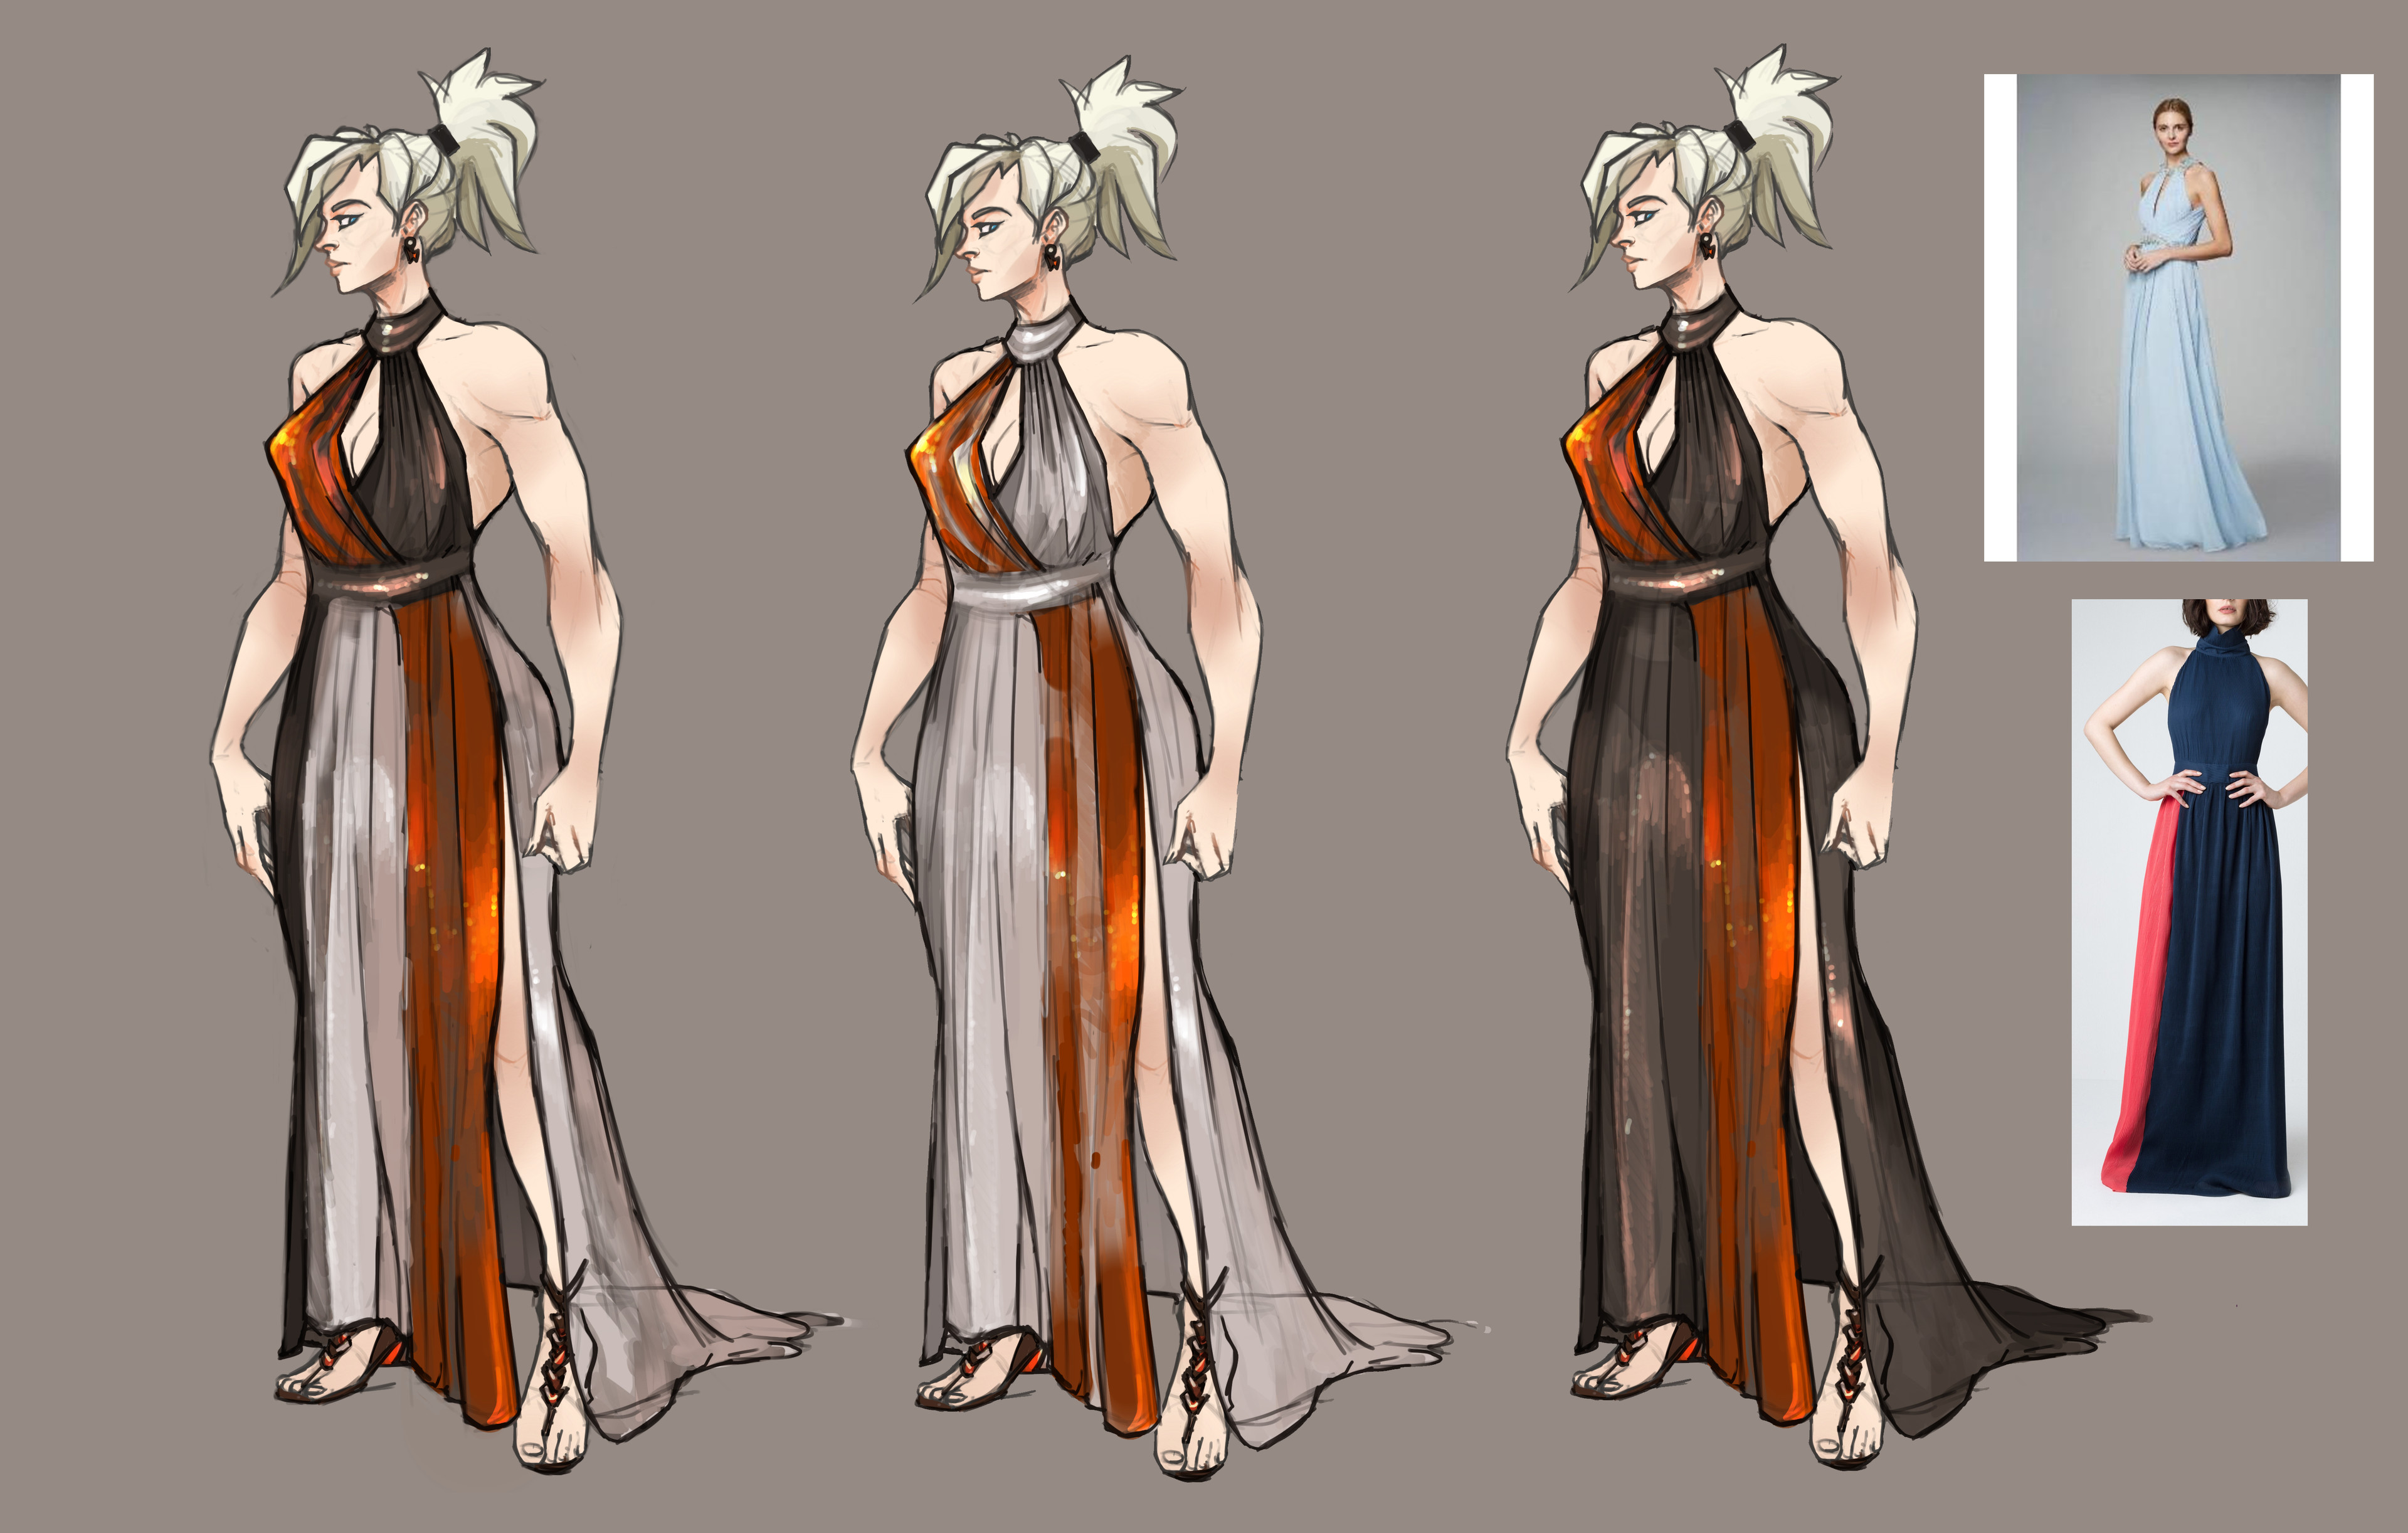 Ideations with research. Chiffon with a bit of shine, I'm also really digging the strips of brighter color.